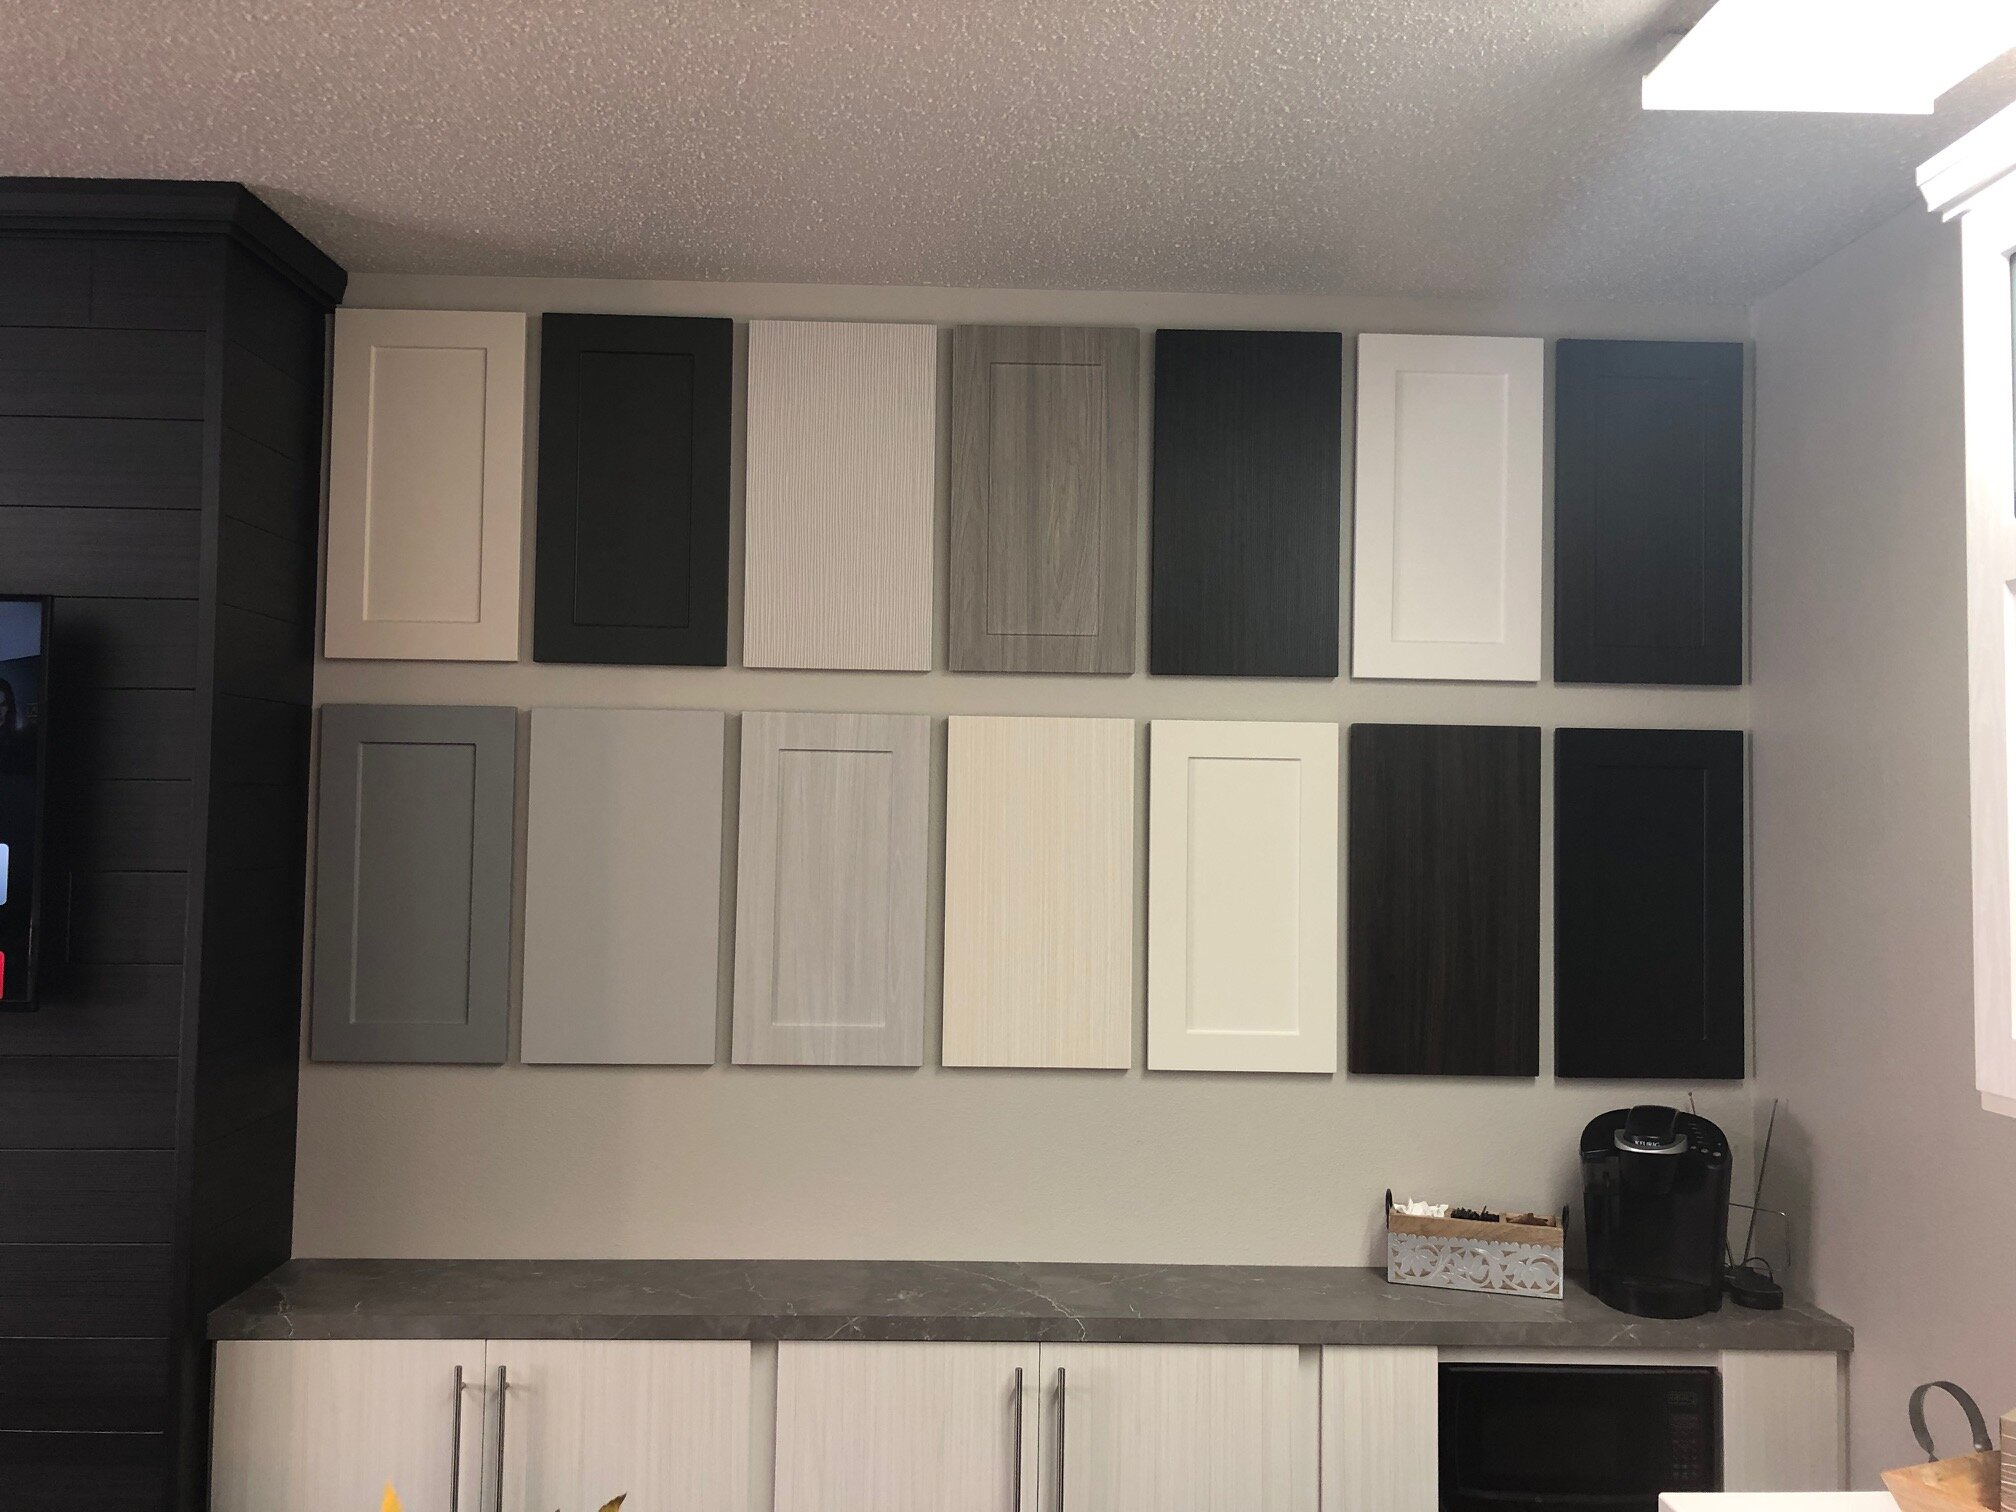 Kitchen Refresh door finish sample display.jpeg